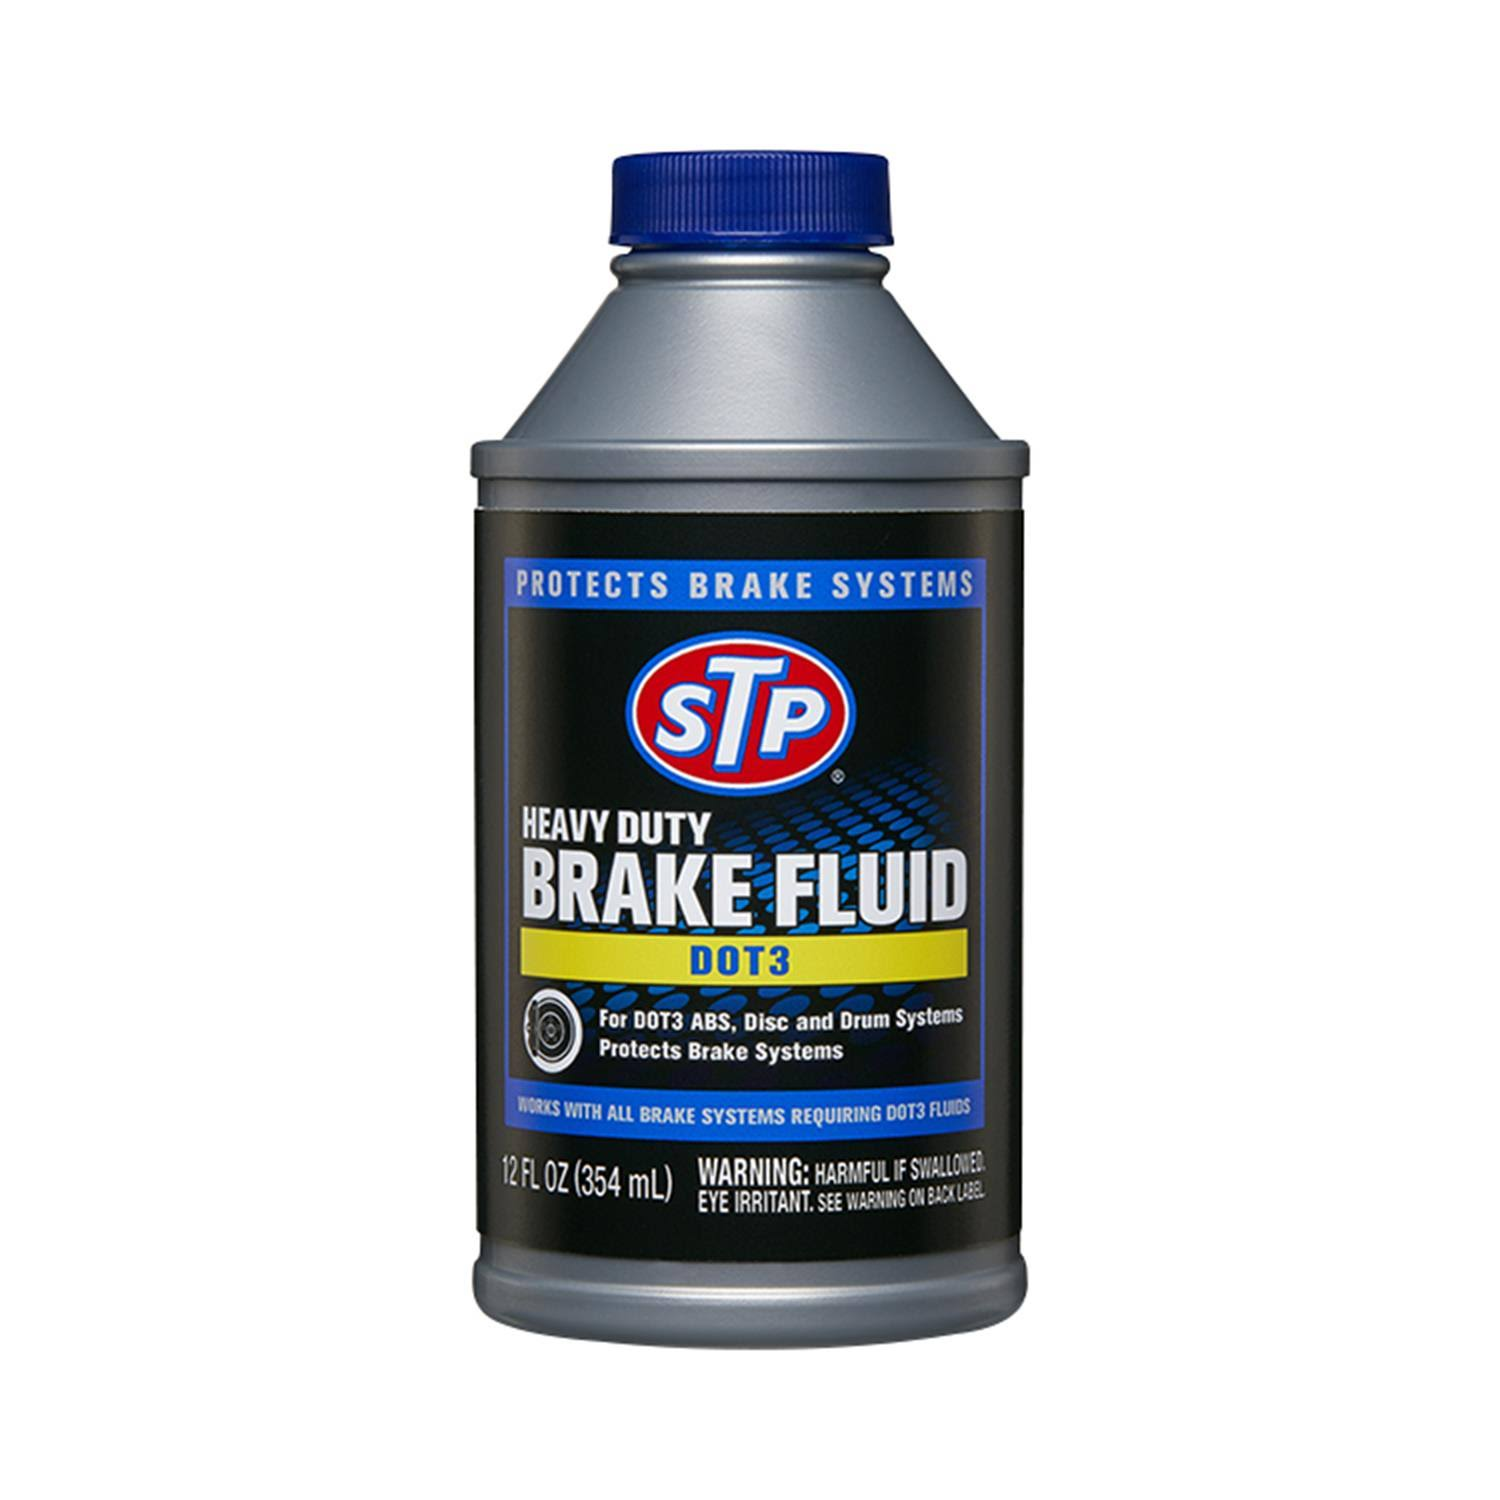 STP Brake Fluid, Heavy Duty, DOT3 - 12 fl oz